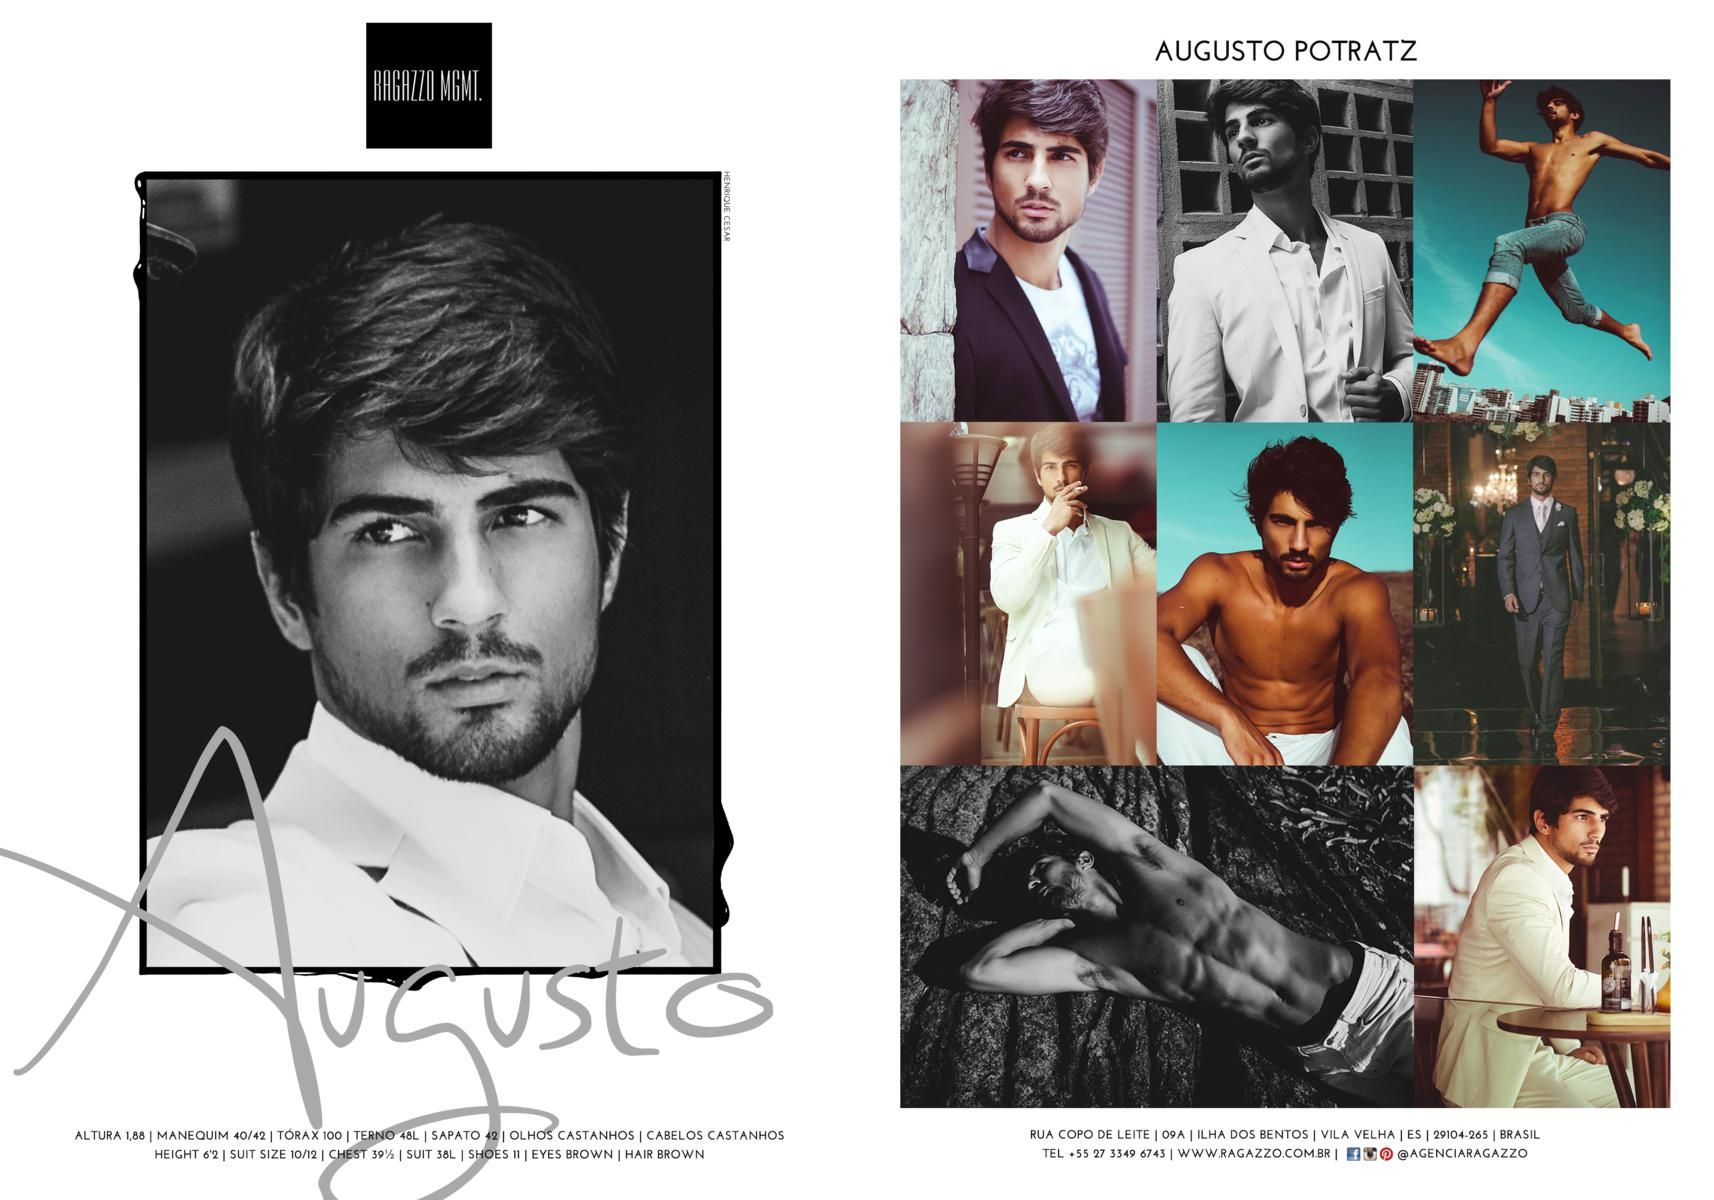 AUGUSTO POTRATZ  #ragazzo #fashion #men #model #modelo